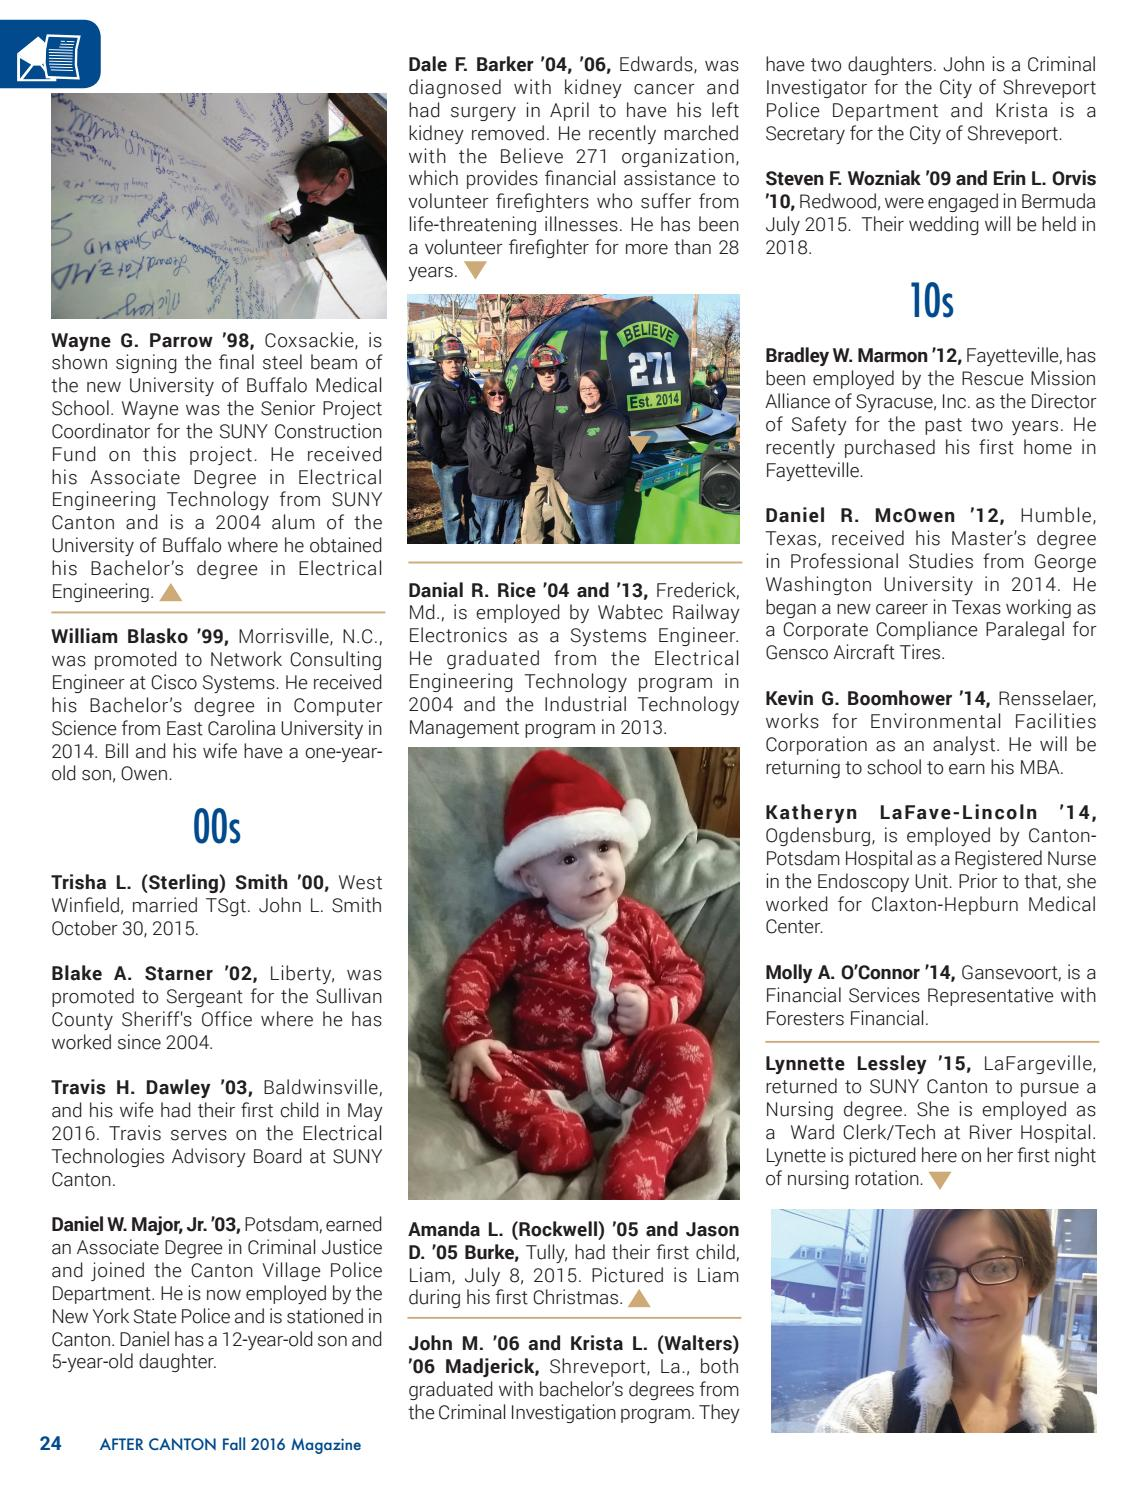 After Canton Fall 2016 by SUNY Canton - issuu